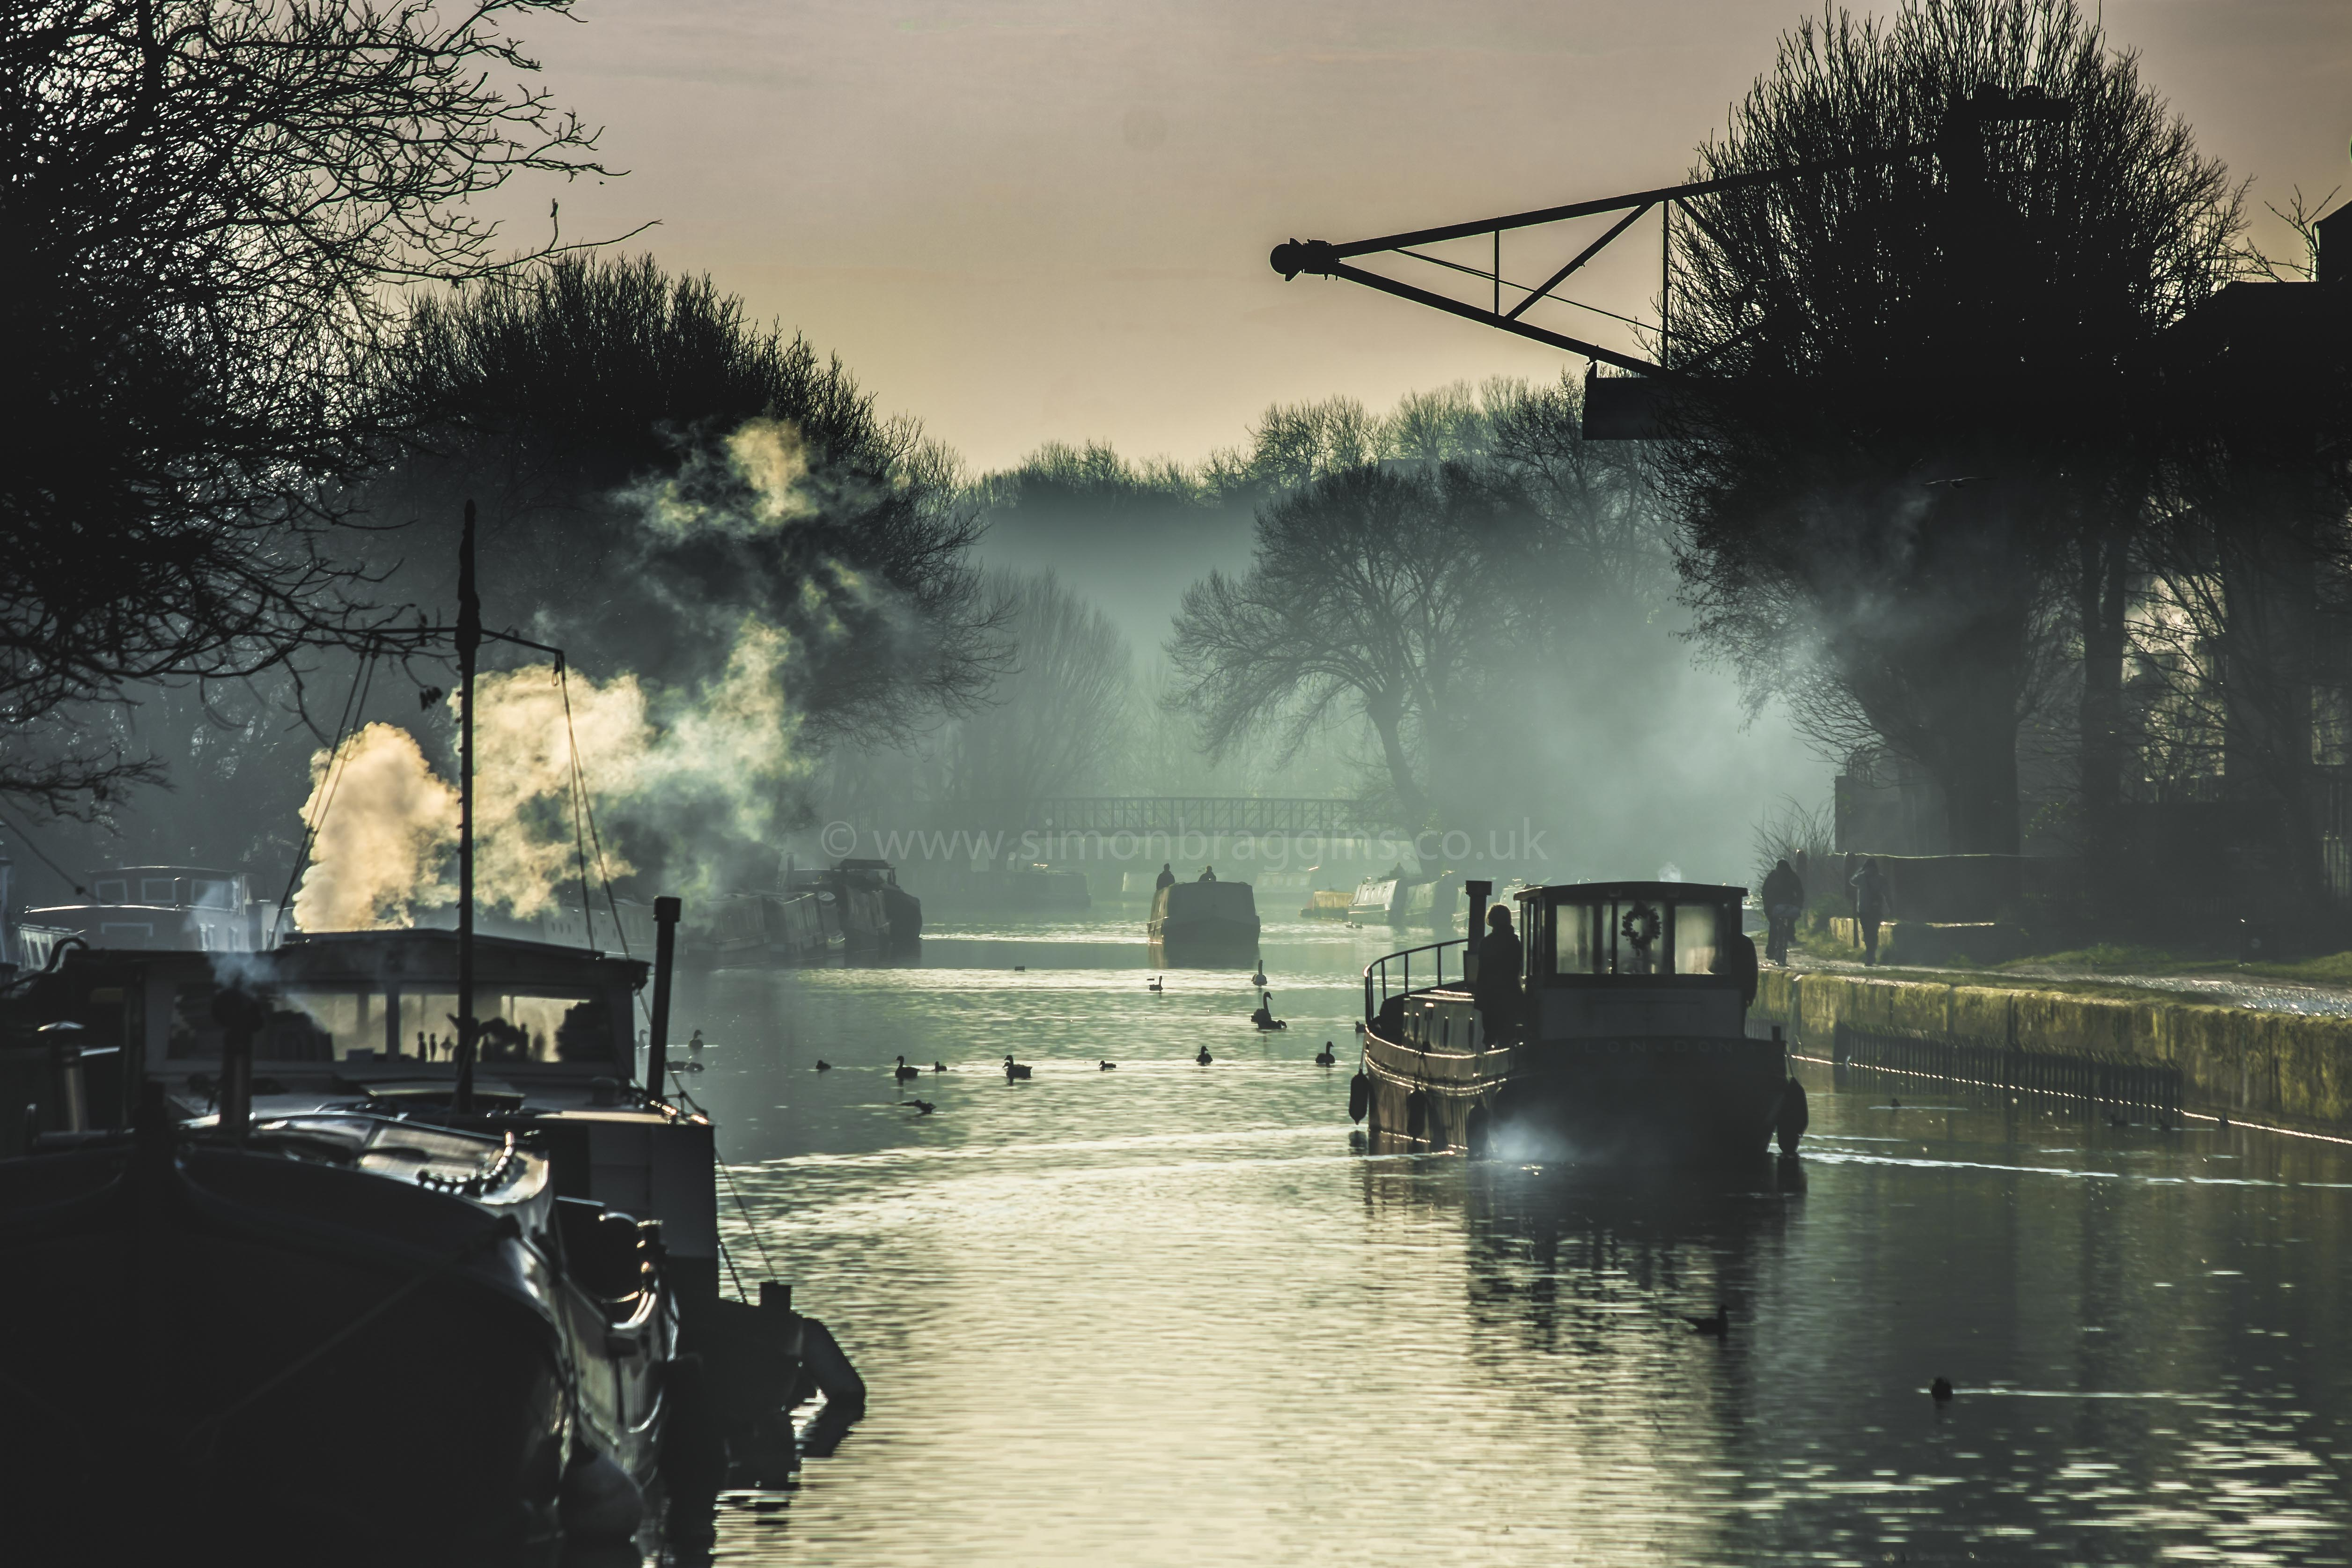 Smokey Lea: A reminder of the Lea's working past - Springfield Park, November 2017